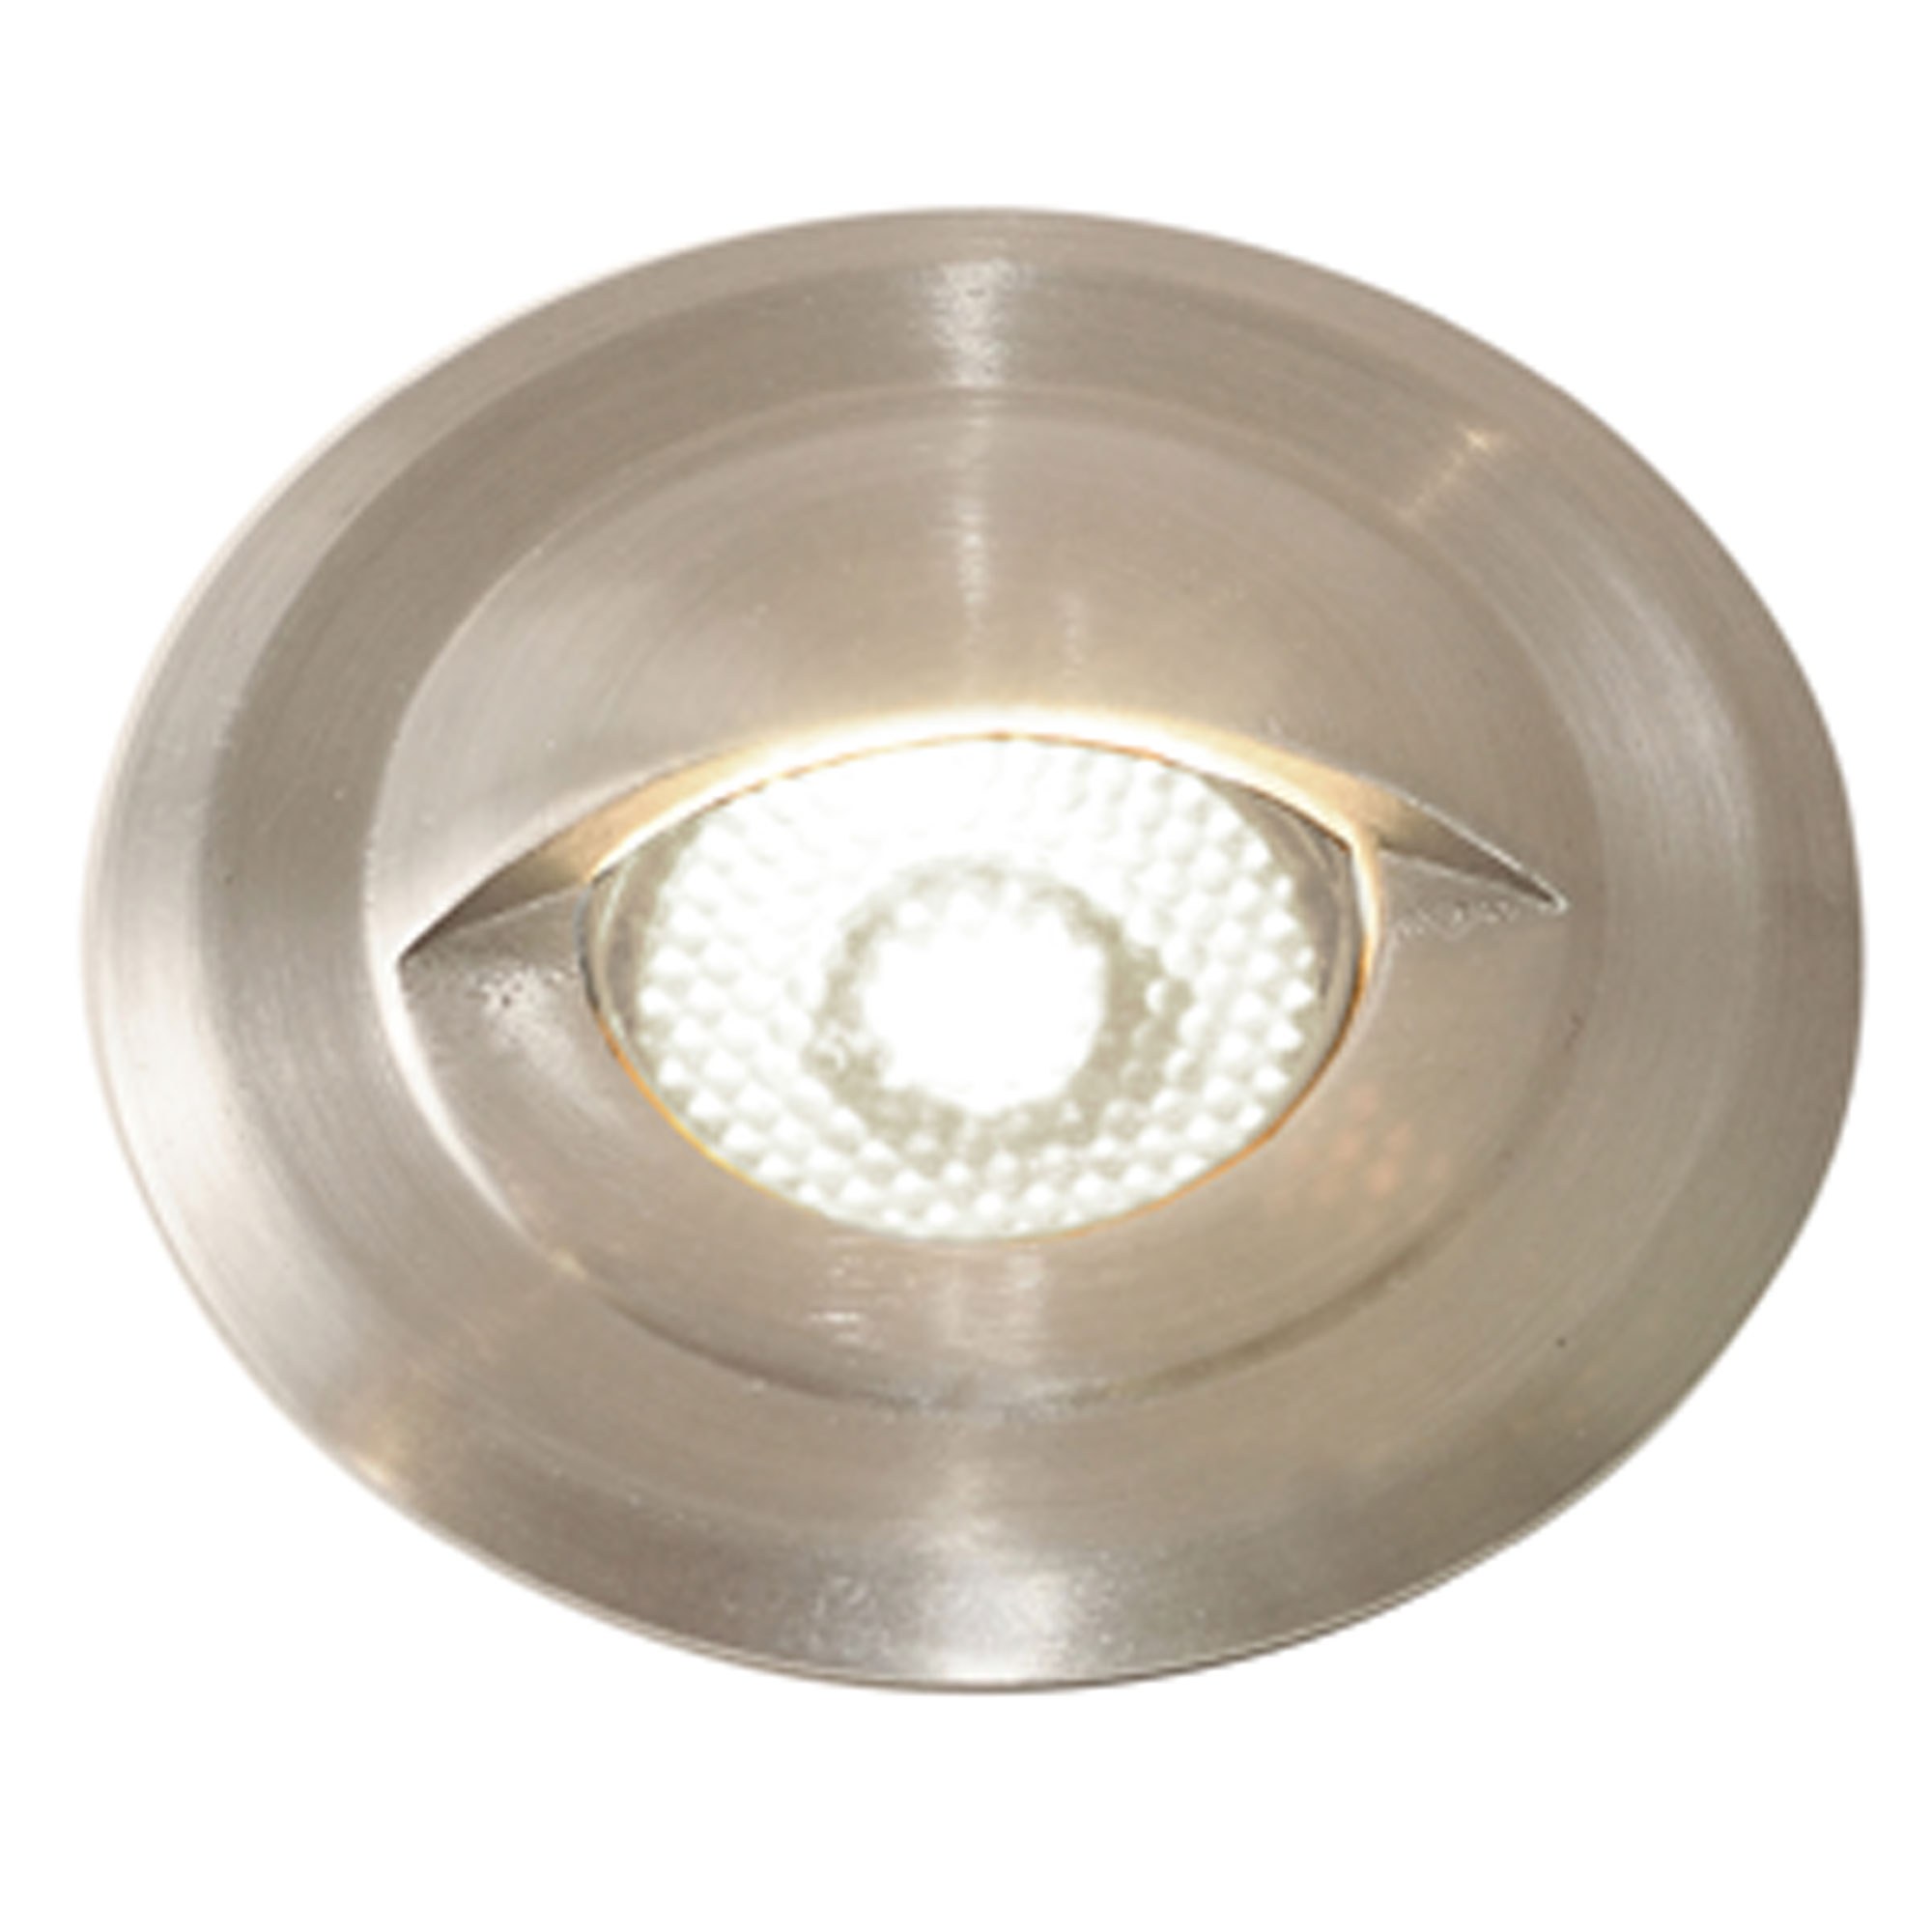 Miniport LED Eyelid Trim Step Light by PureEdge Lighting | MPORT-12VAC-EL-SS  sc 1 st  Lightology & LED Eyelid Trim Step Light by PureEdge Lighting | MPORT-12VAC-EL-SS azcodes.com